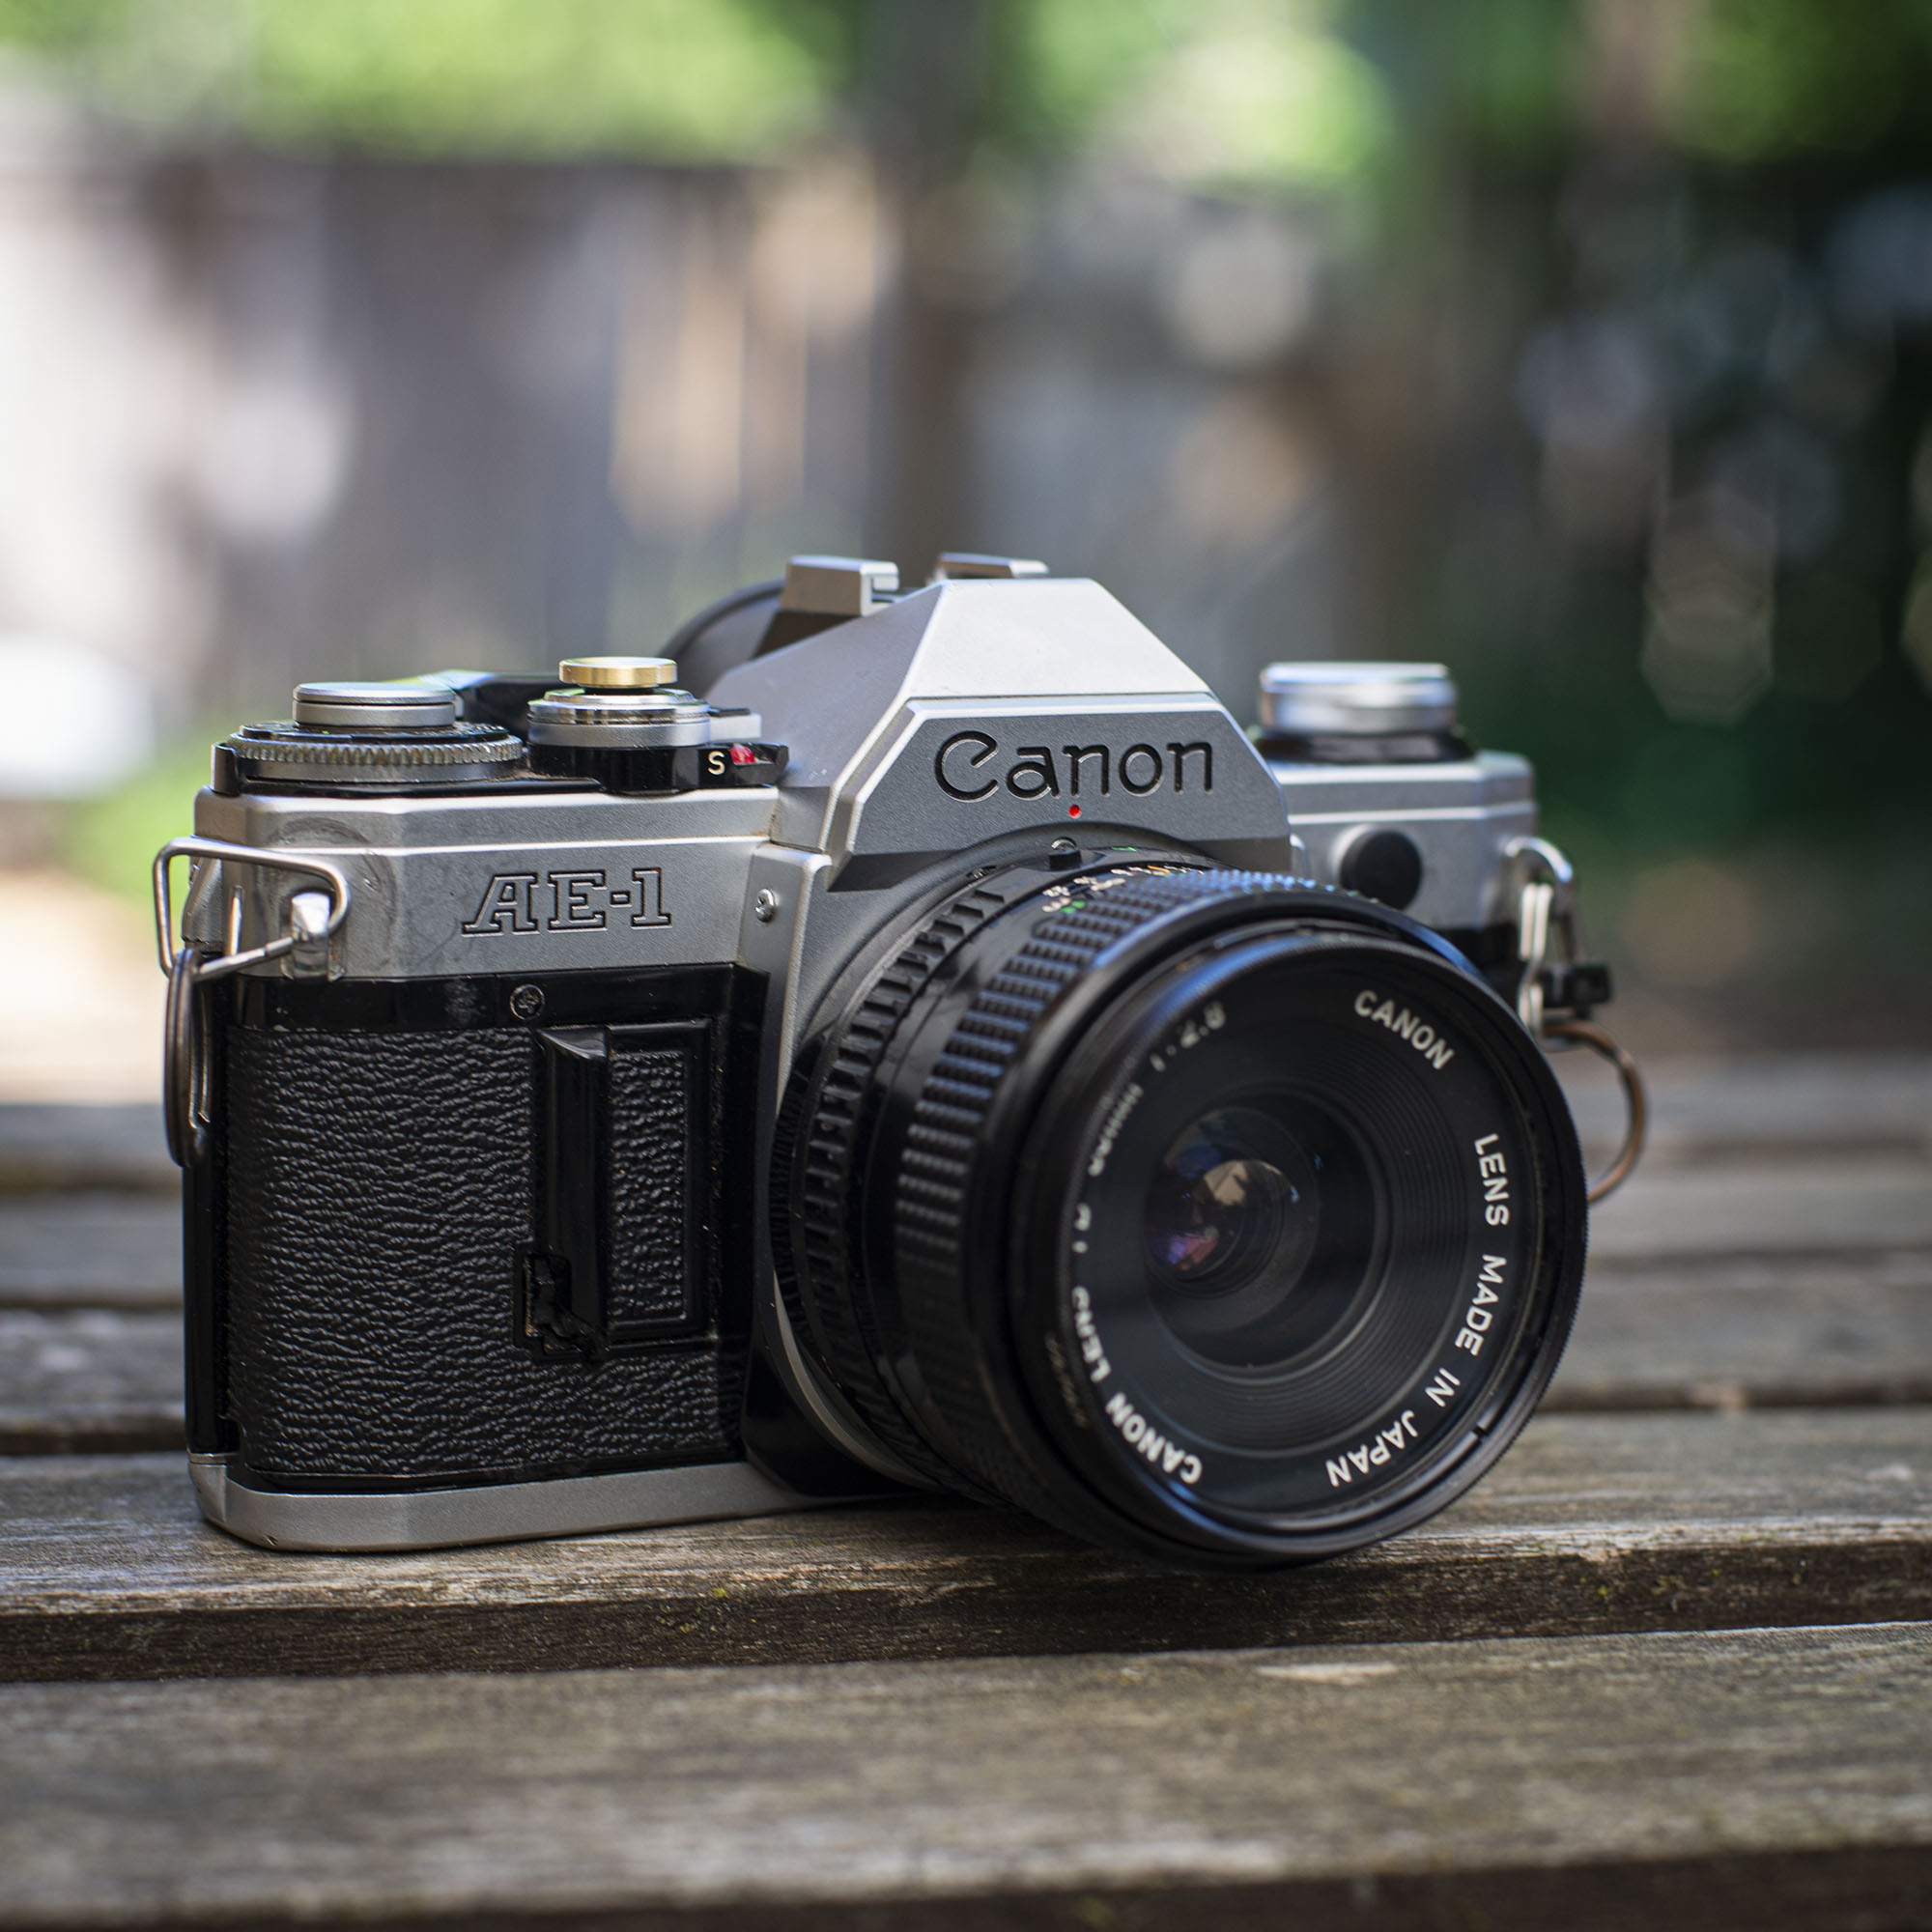 Canon AE-1 right side